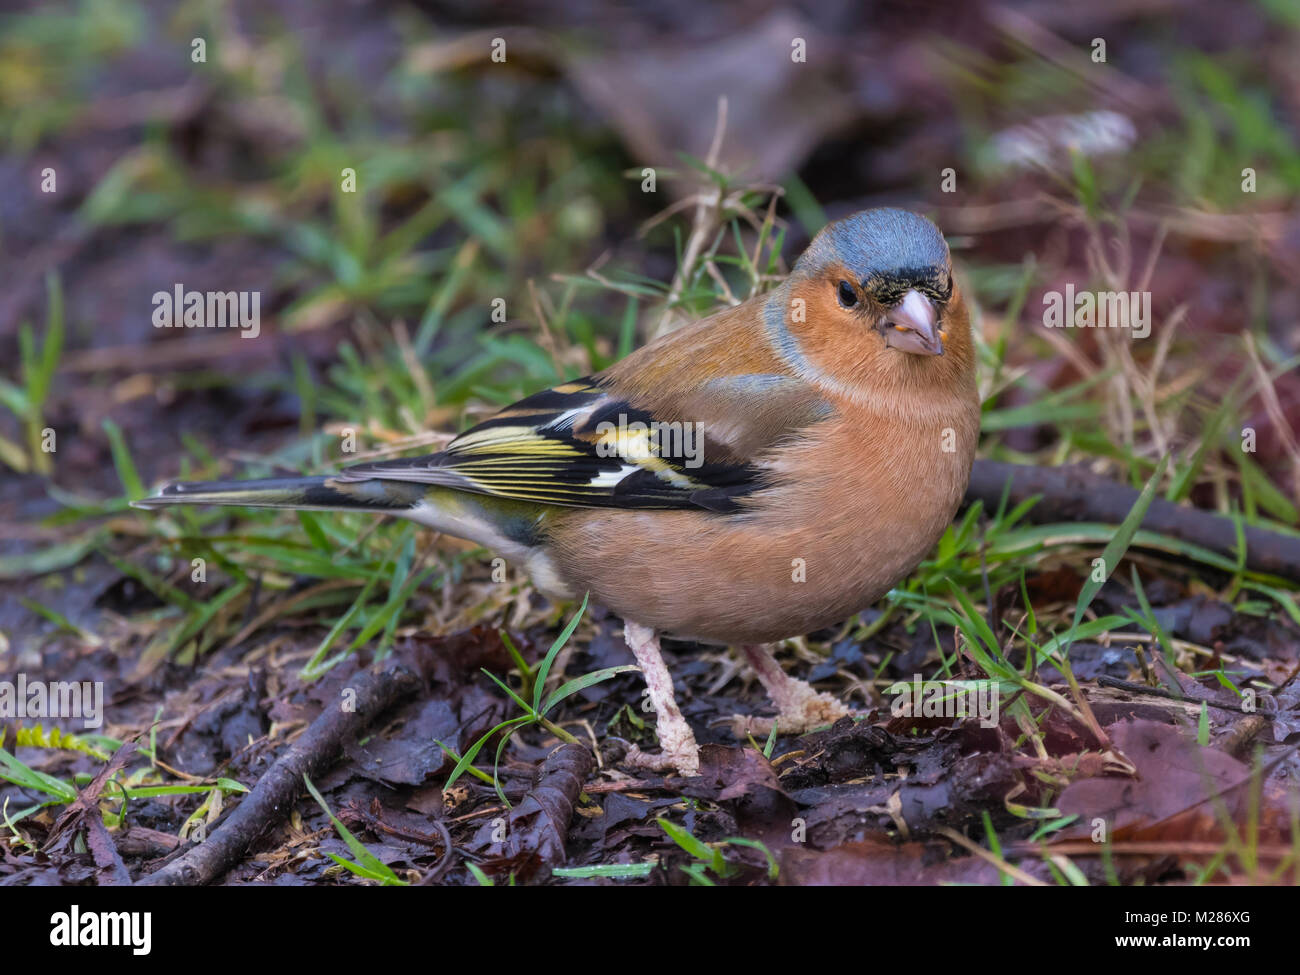 Adult male Common Chaffinch (Fringilla coelebs), a small bird in Winter on the ground eating in West Sussex, England, - Stock Image